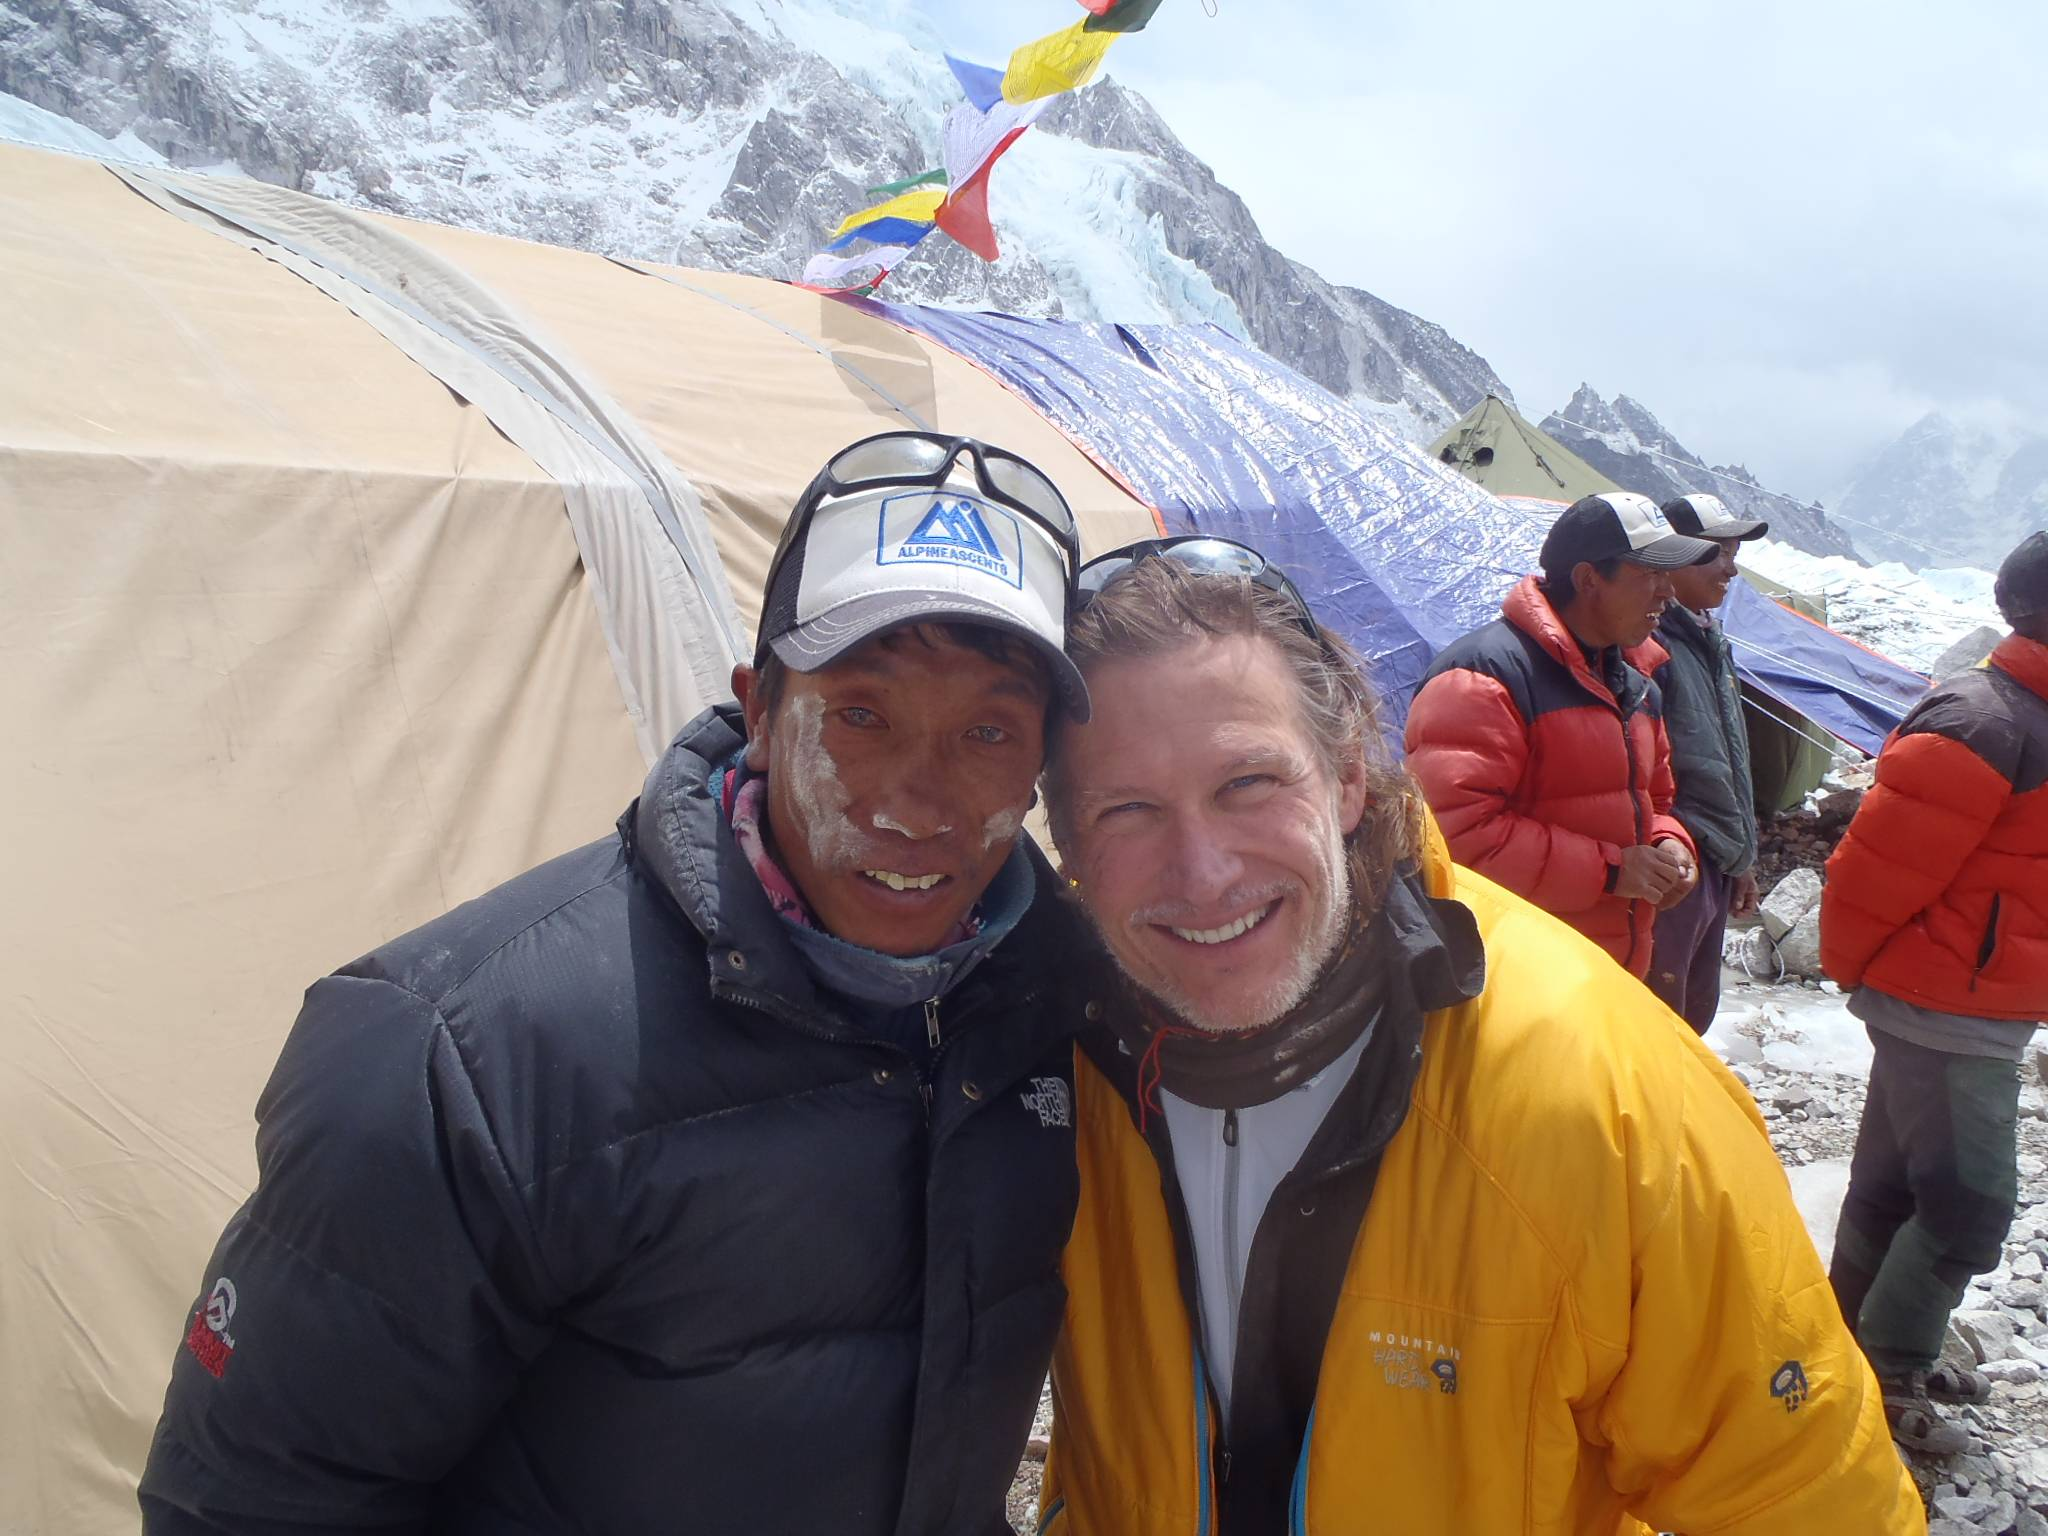 Local climber still hears 'upward calling' to Mount Everest